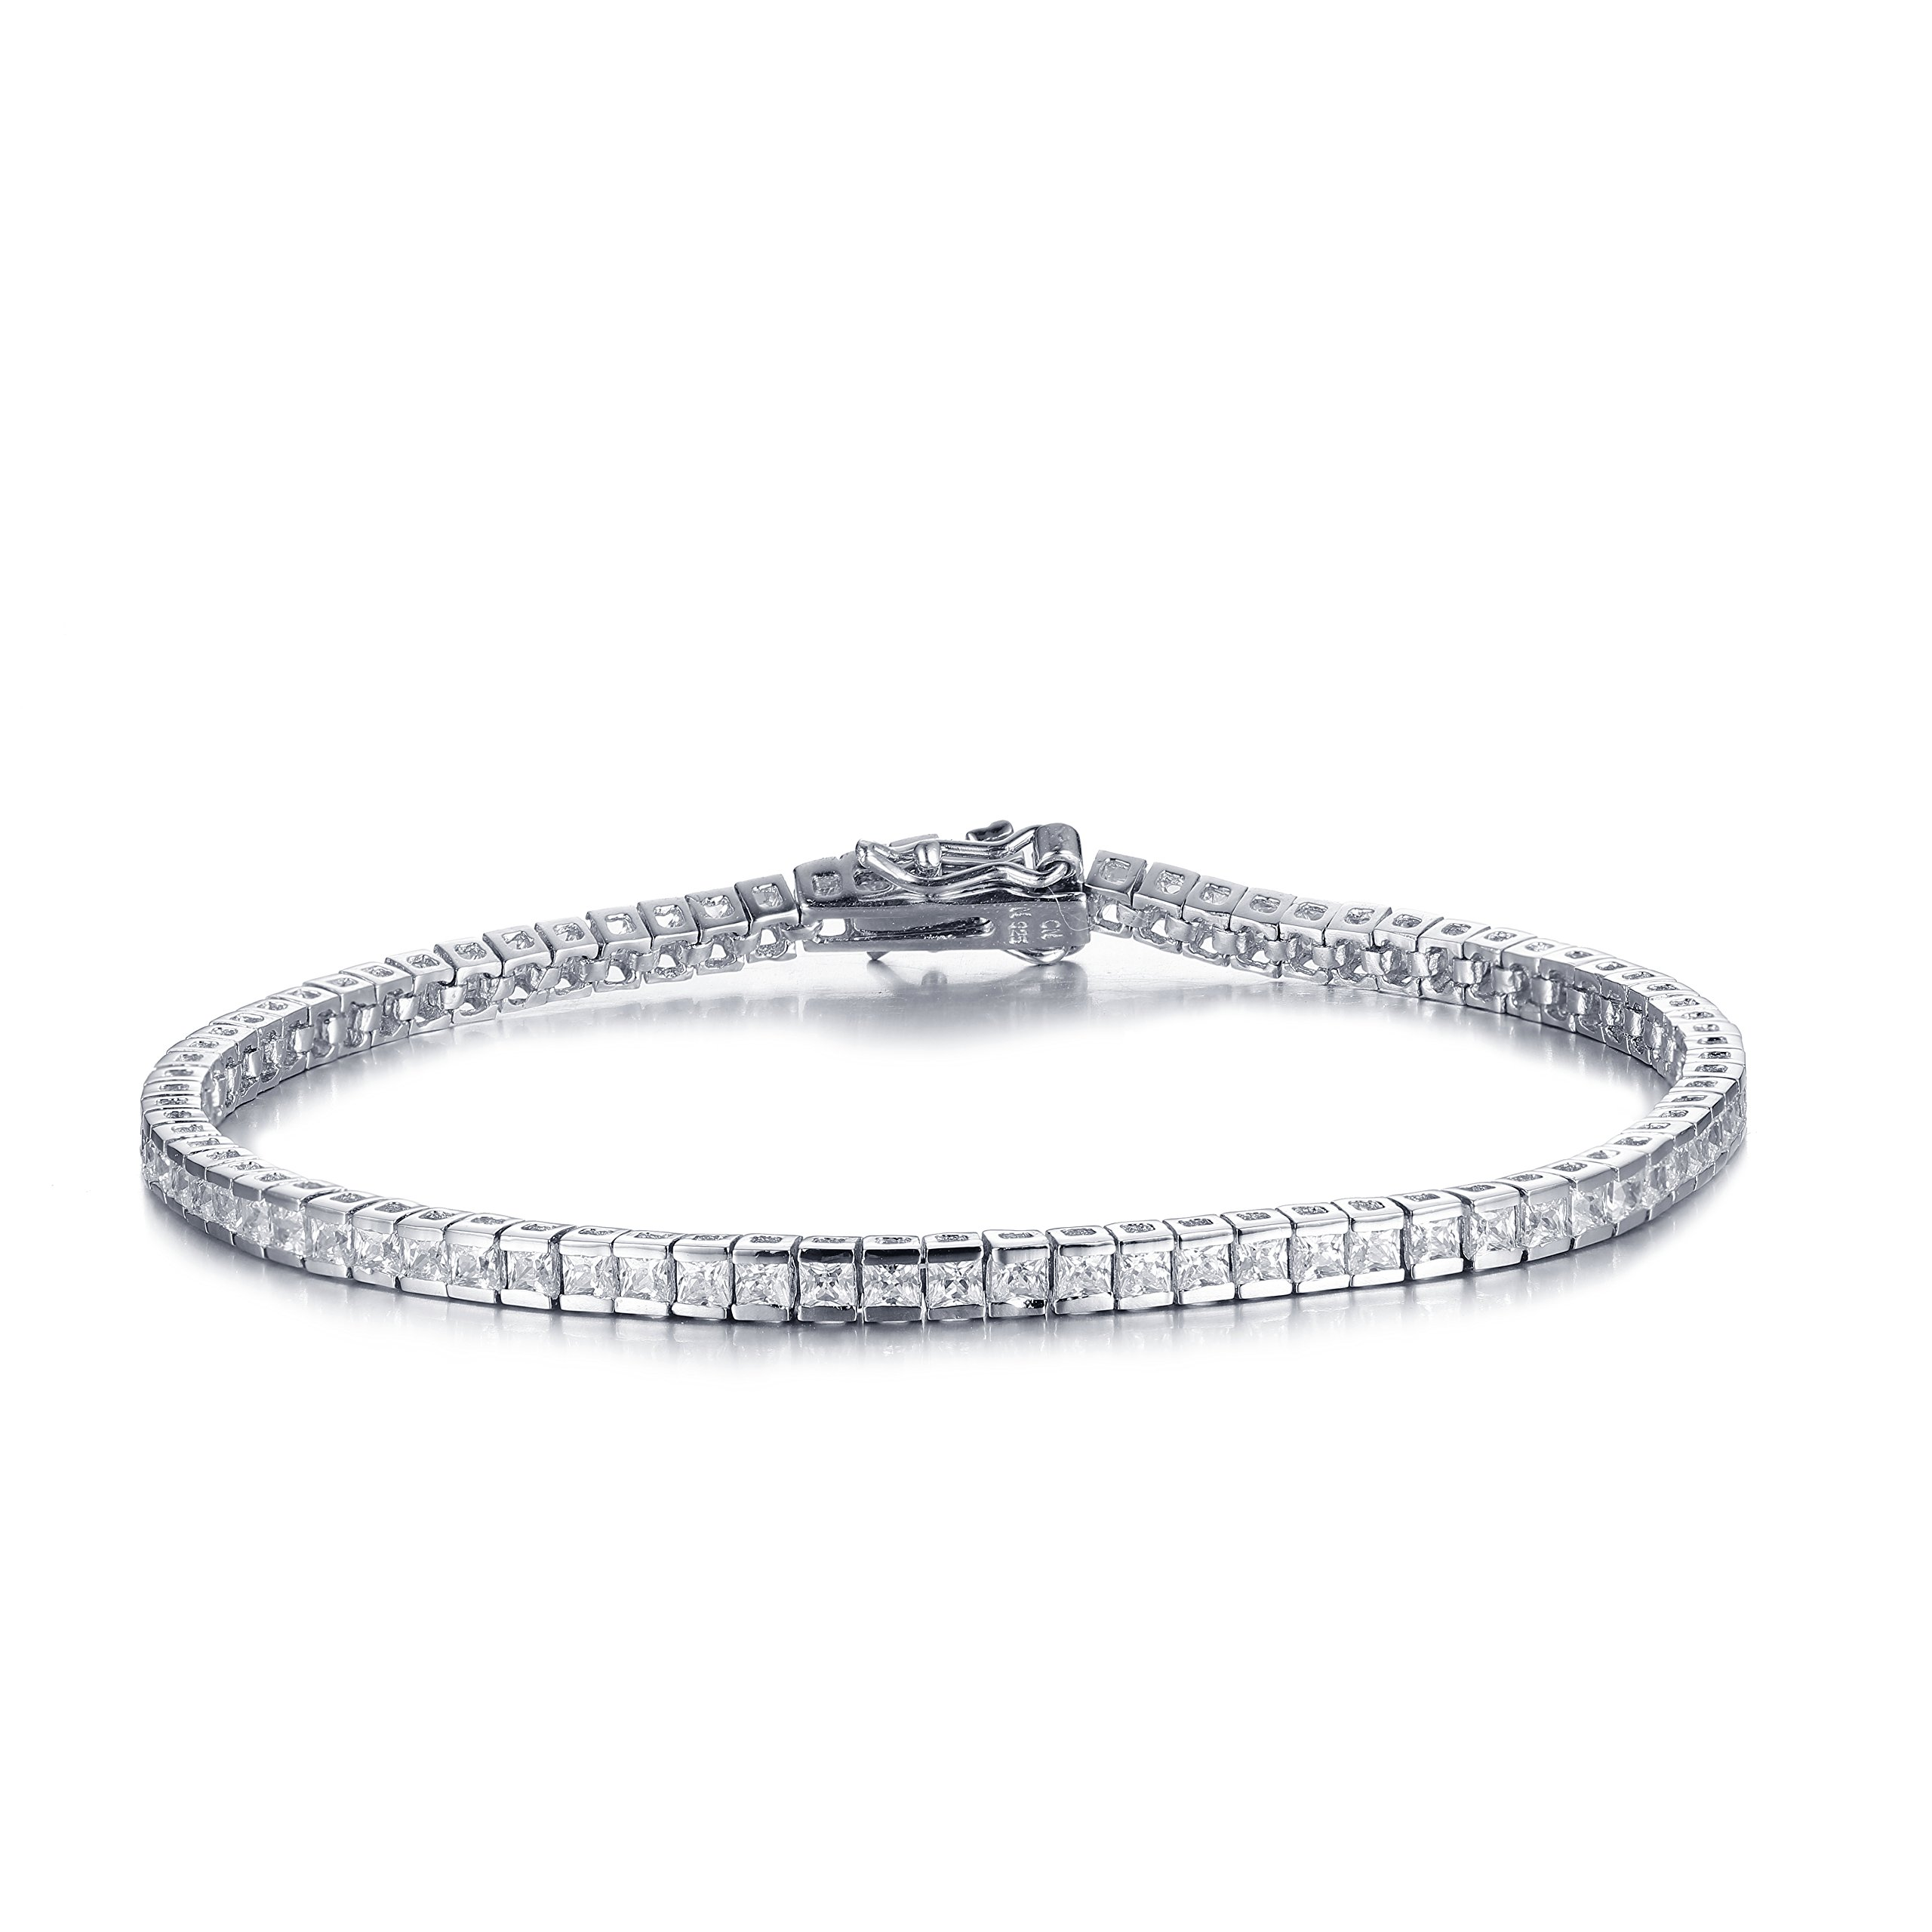 Mia Sarine Womens Cubic Zirconia Channel Set Tennis Bracelet in Rhodium Plated Sterling Silver